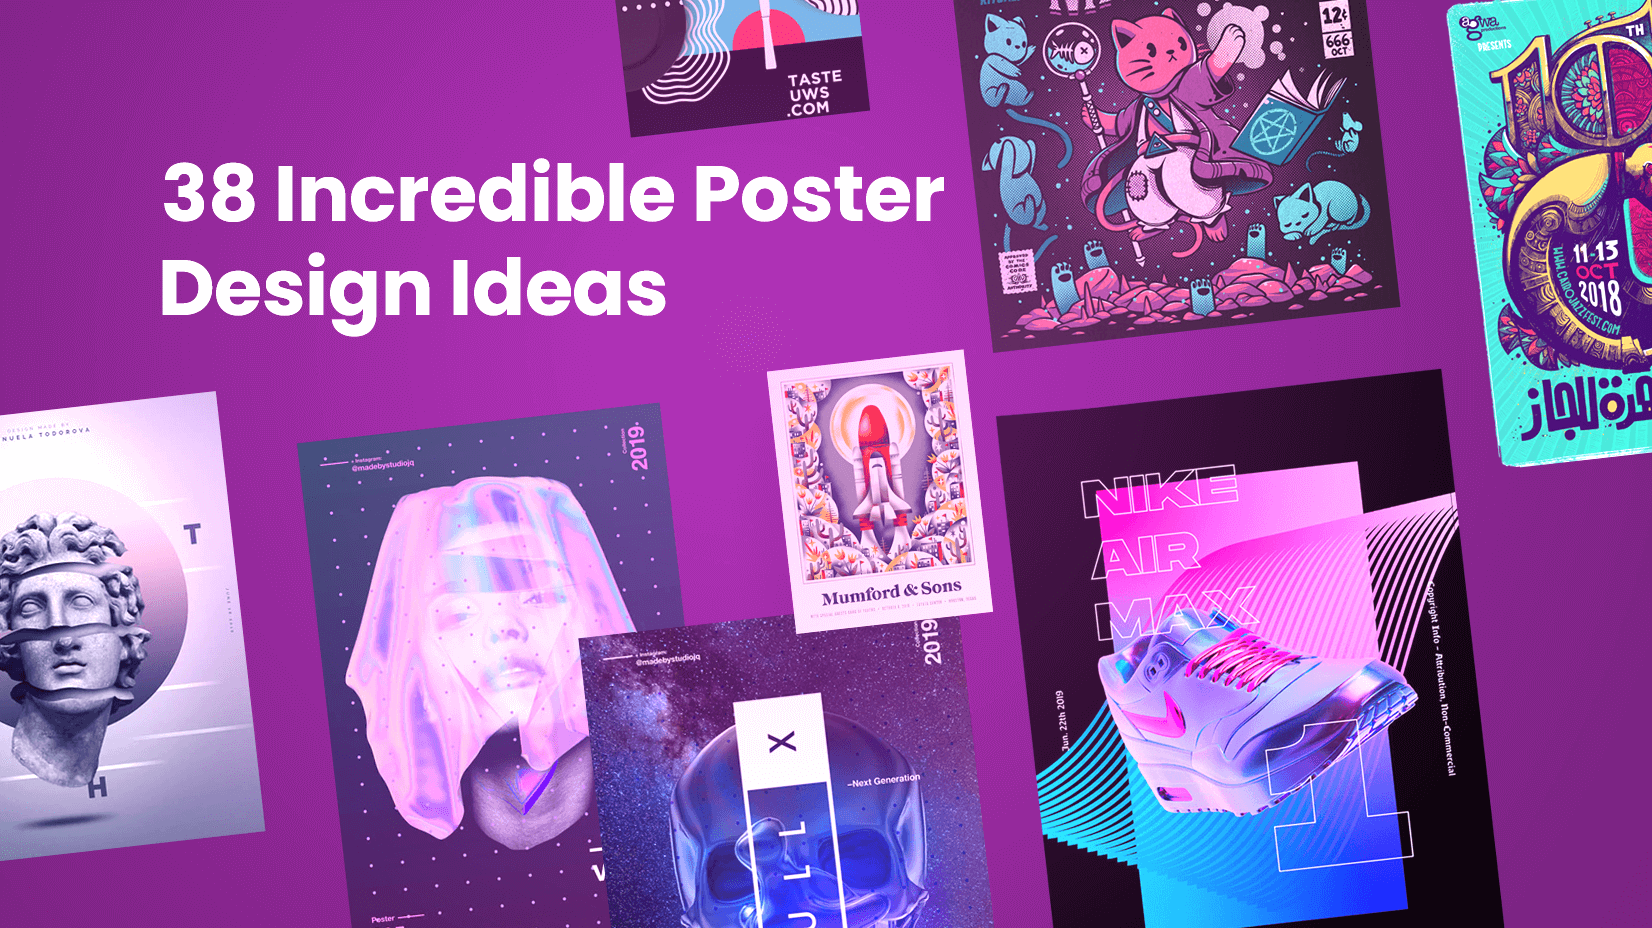 38 Incredible Poster Design Ideas that Impress with Creativity and Style